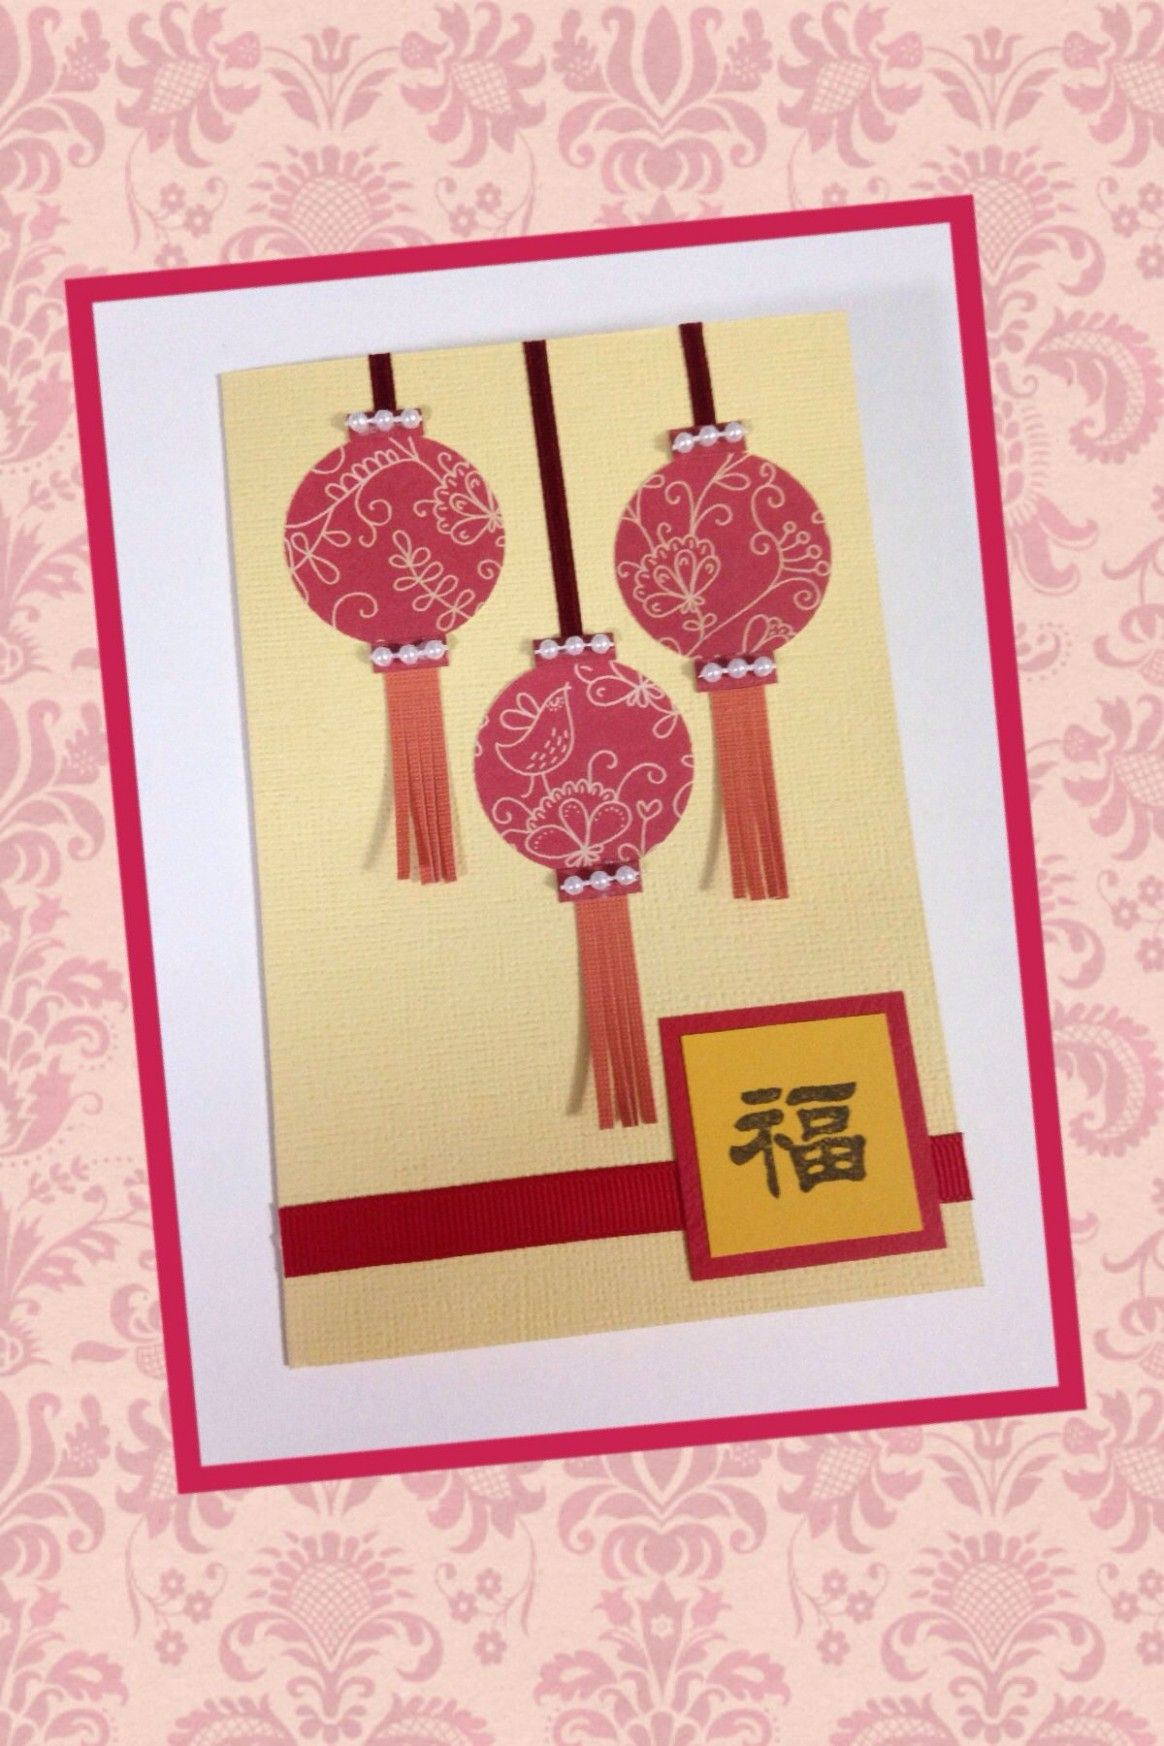 8 Top Image Chinese New Year Card In 2021 Chinese New Year Card Cards Handmade Easy Greeting Cards